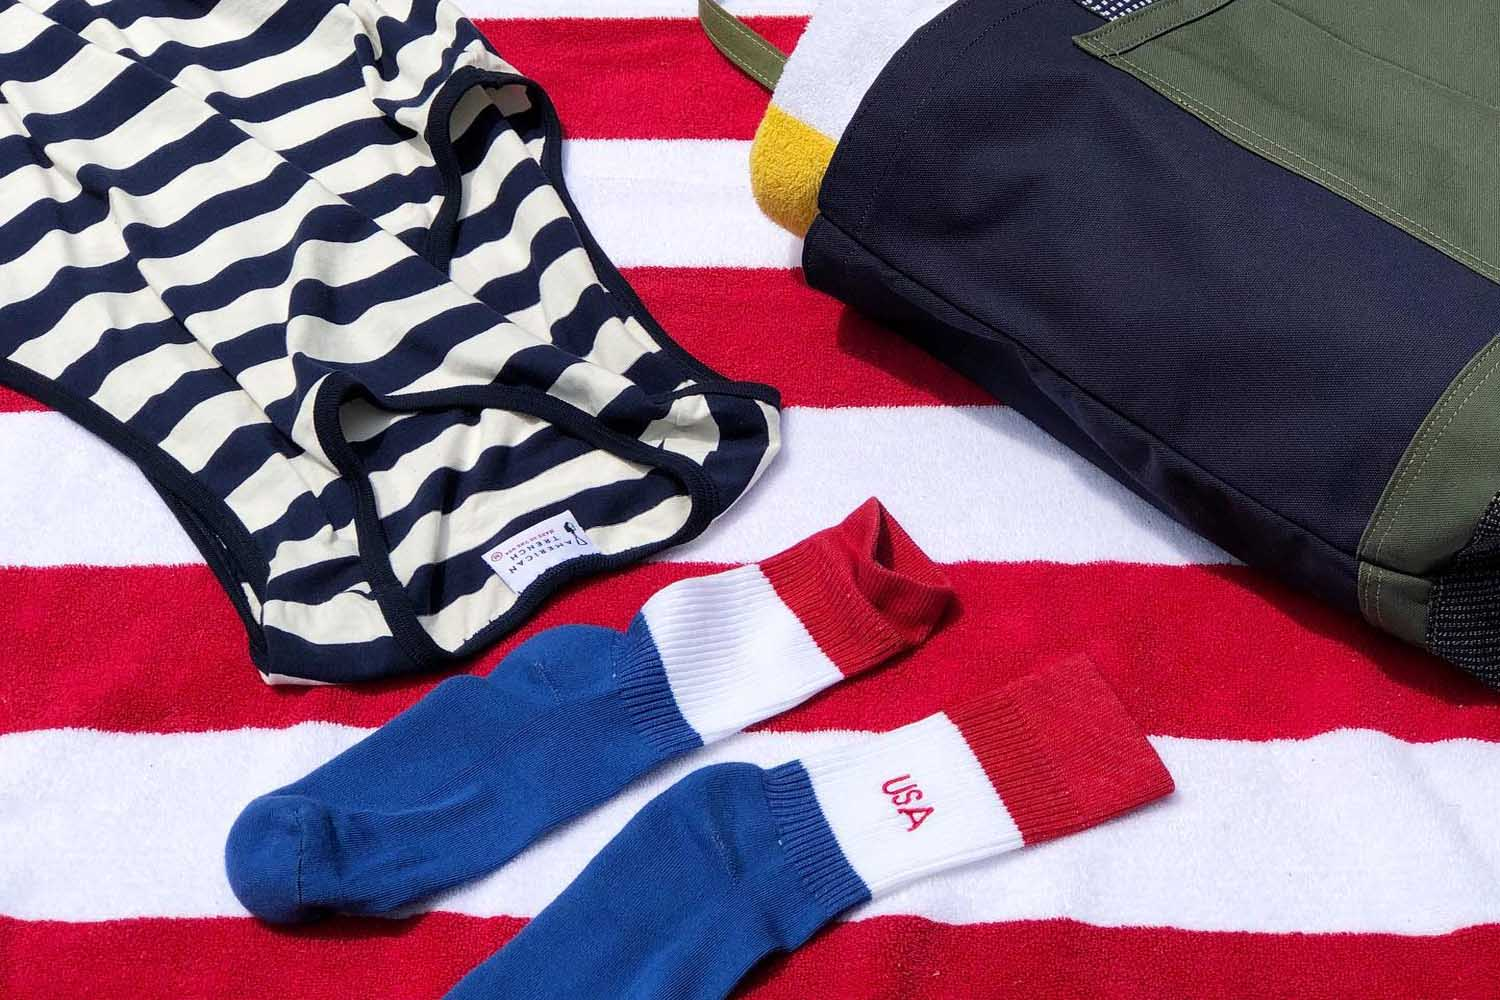 Take 20% off everything at American Trench with the promo code JULY4TH.